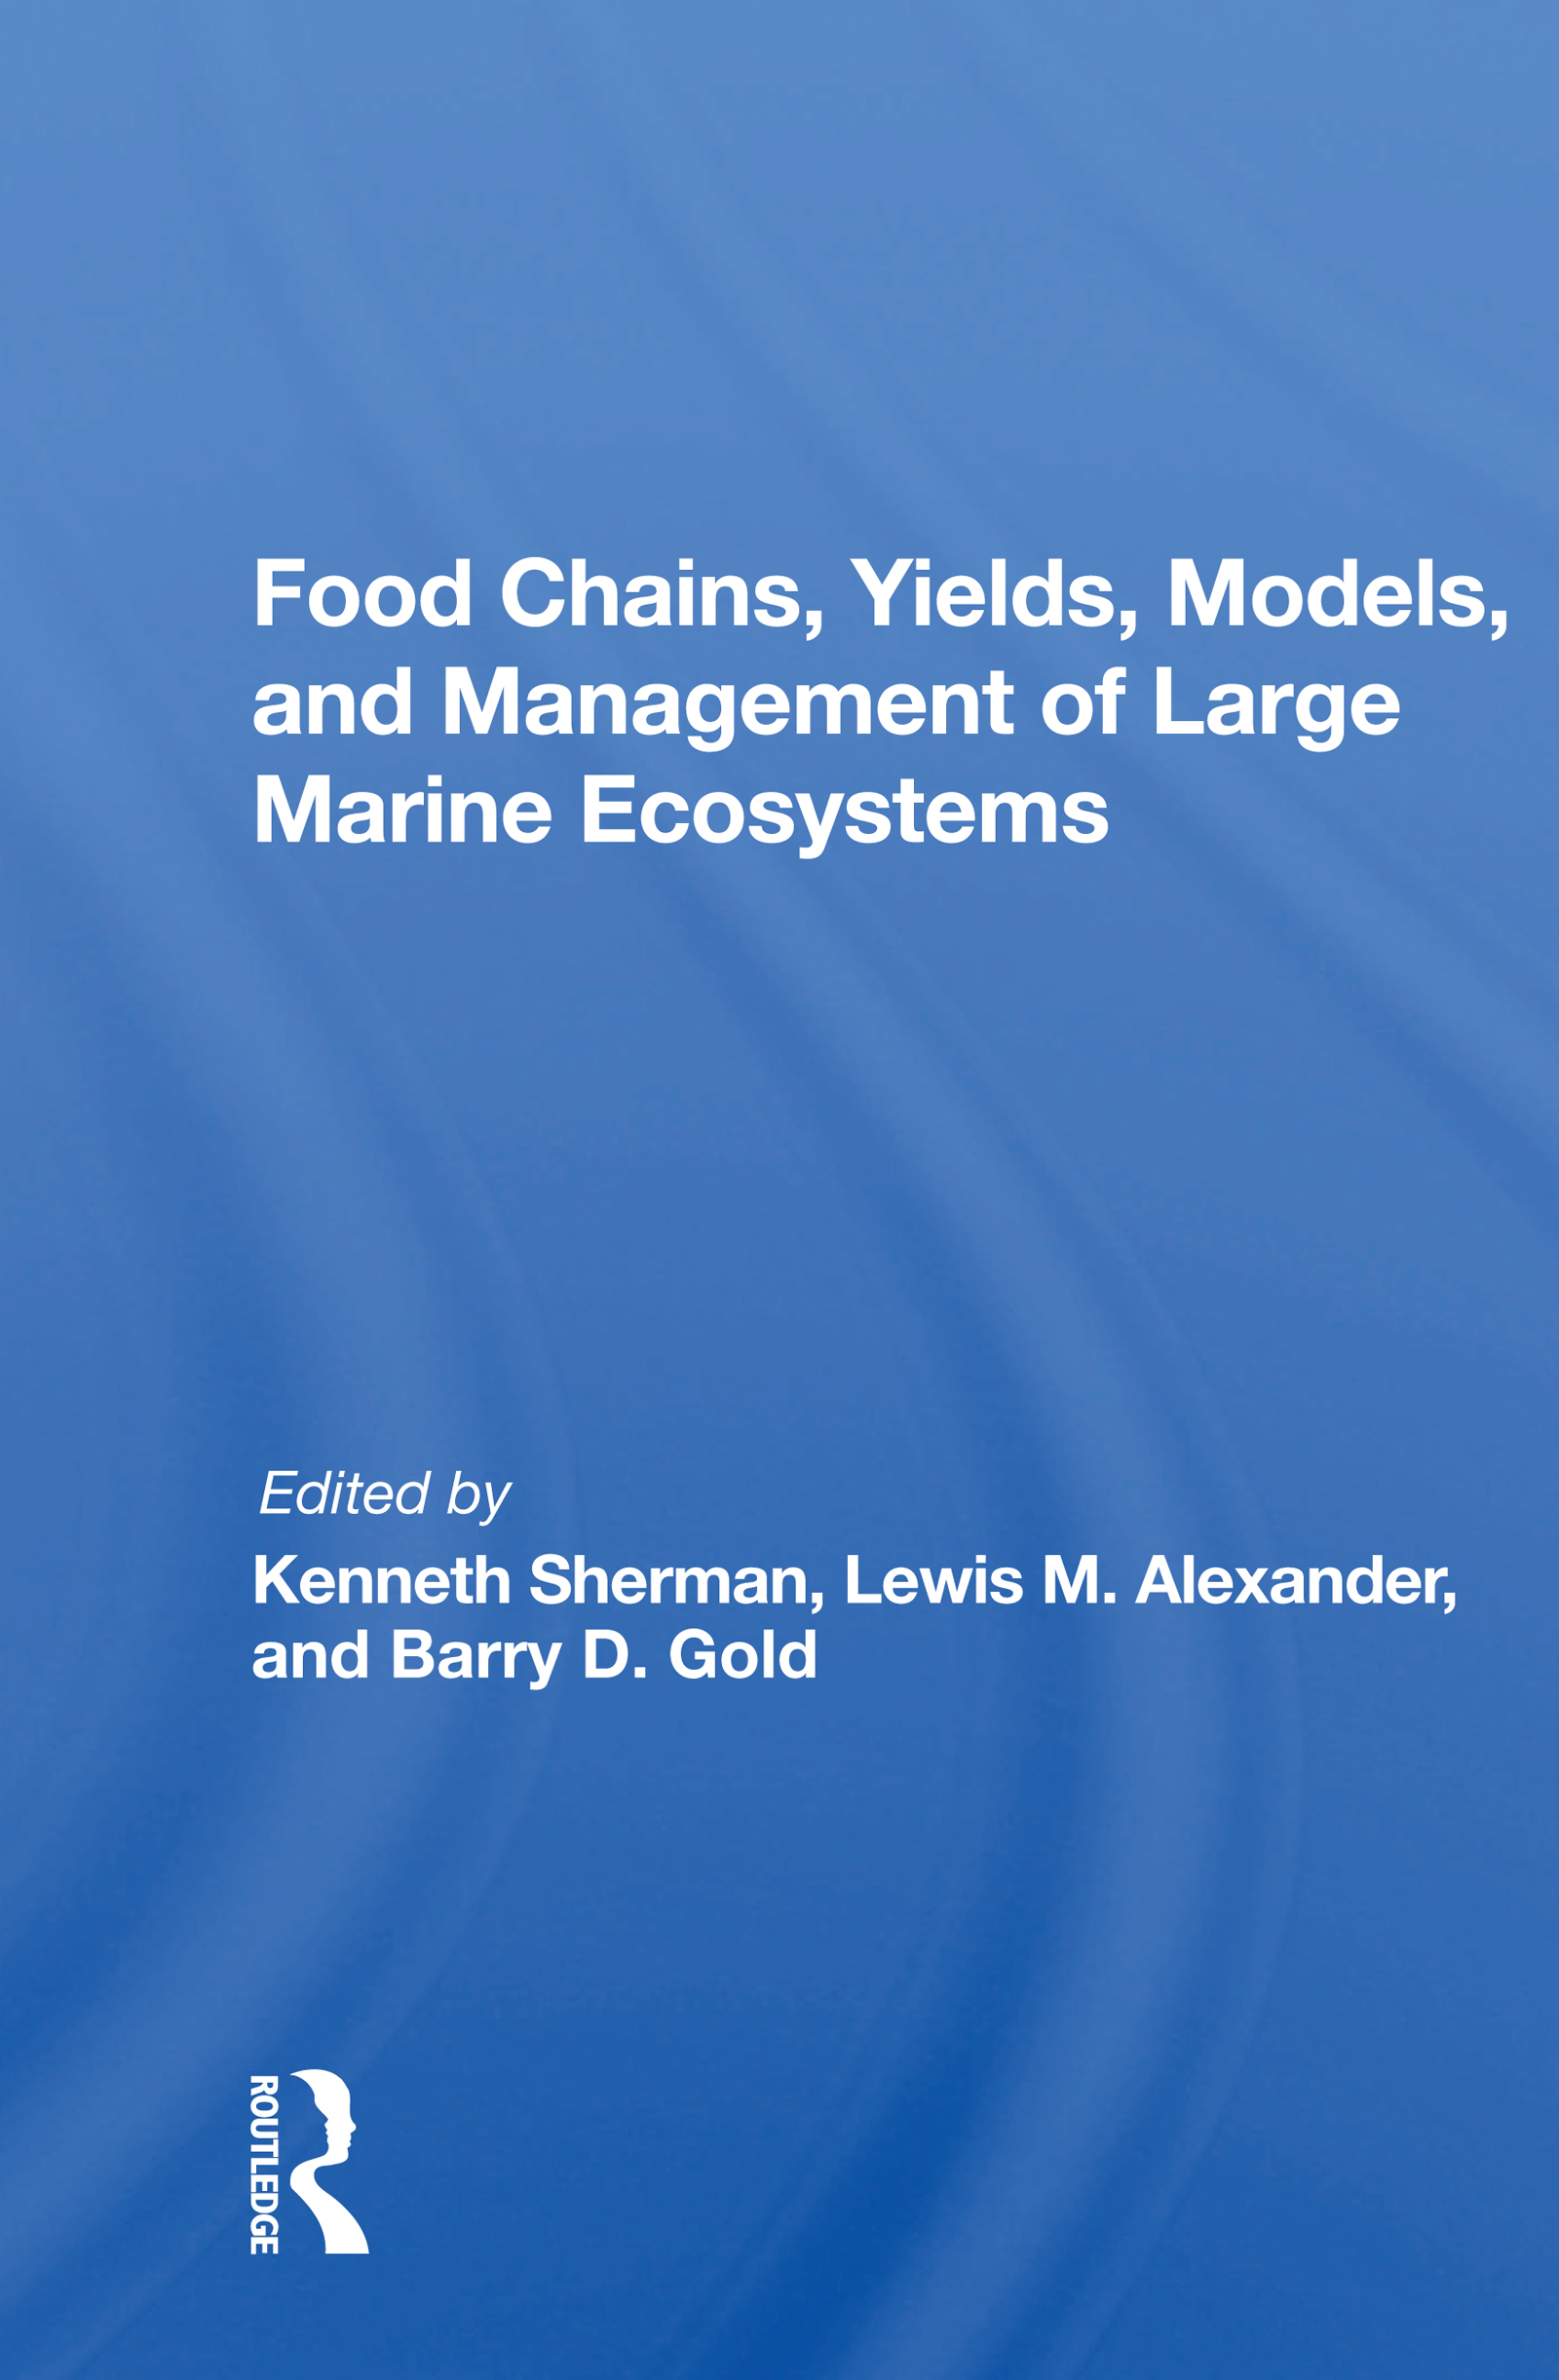 Food Chains, Yields, Models, and Management of Large Marine Ecosystems